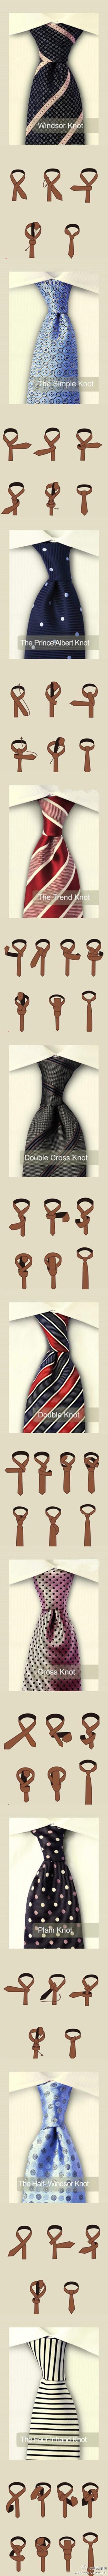 How to: tie ties